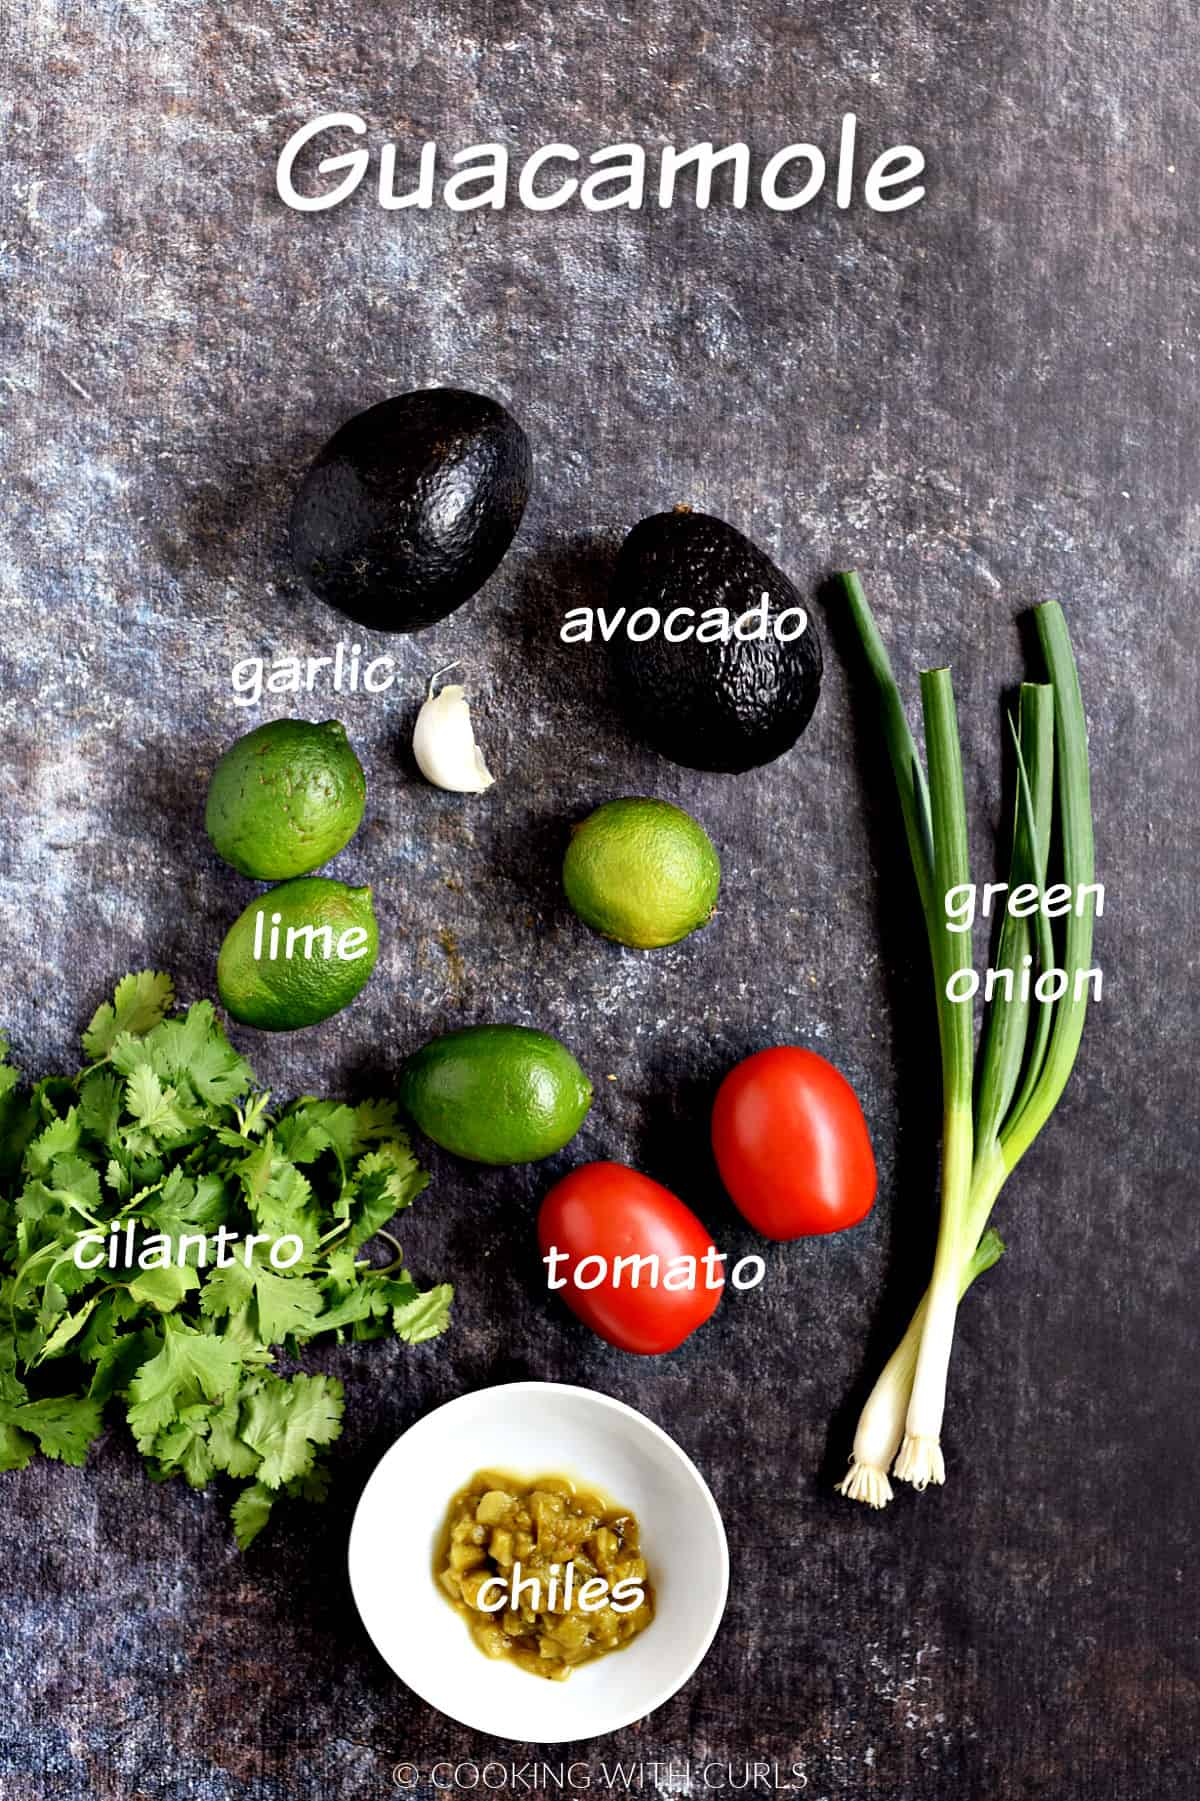 Two avocados, limes cilantro, garlic, green onions, tomatoes, and chiles.